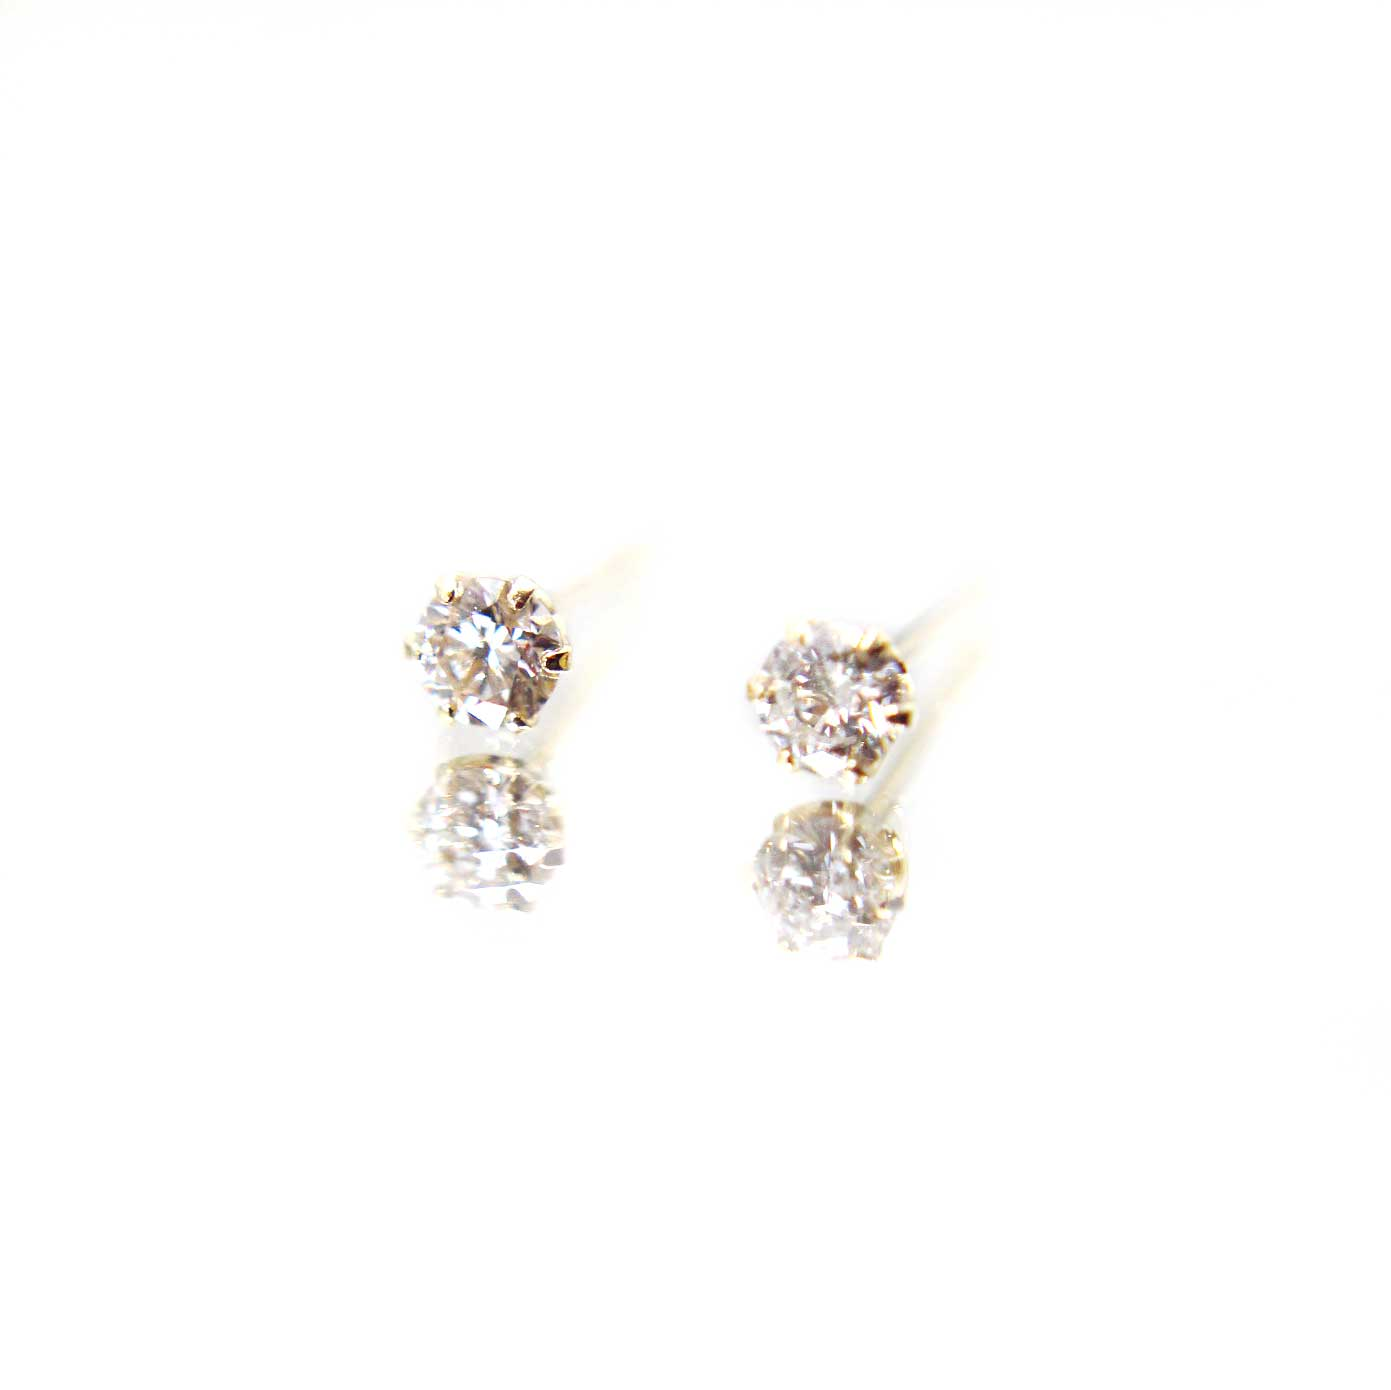 Diamond Series - Earrings - Amber Studs (0.2 Carats. Platinum & 18K Gold) - *PREORDER